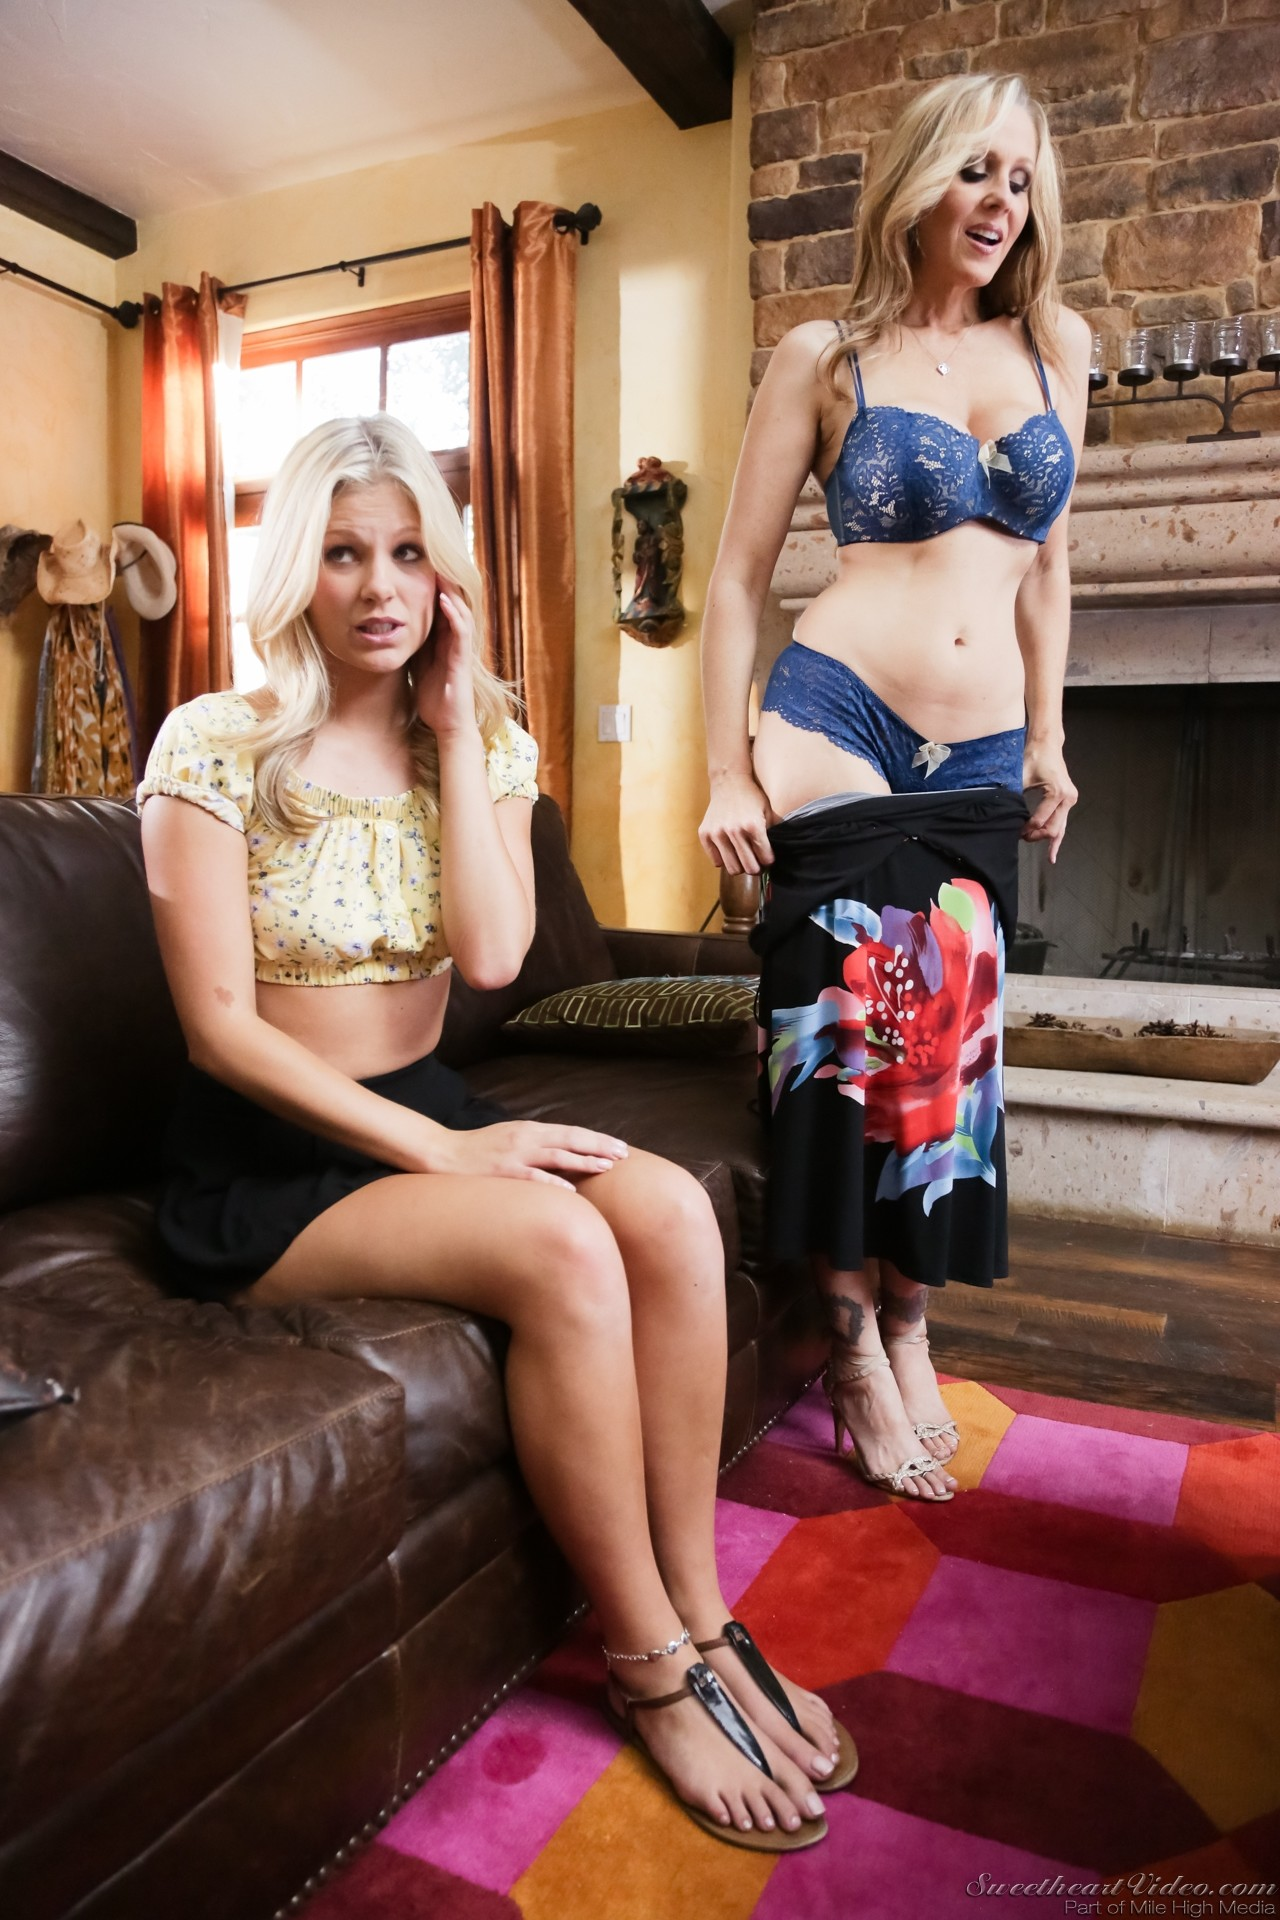 Leggy older blonde babe Julia Ann unleashing big tits from lingerie № 1392363 загрузить